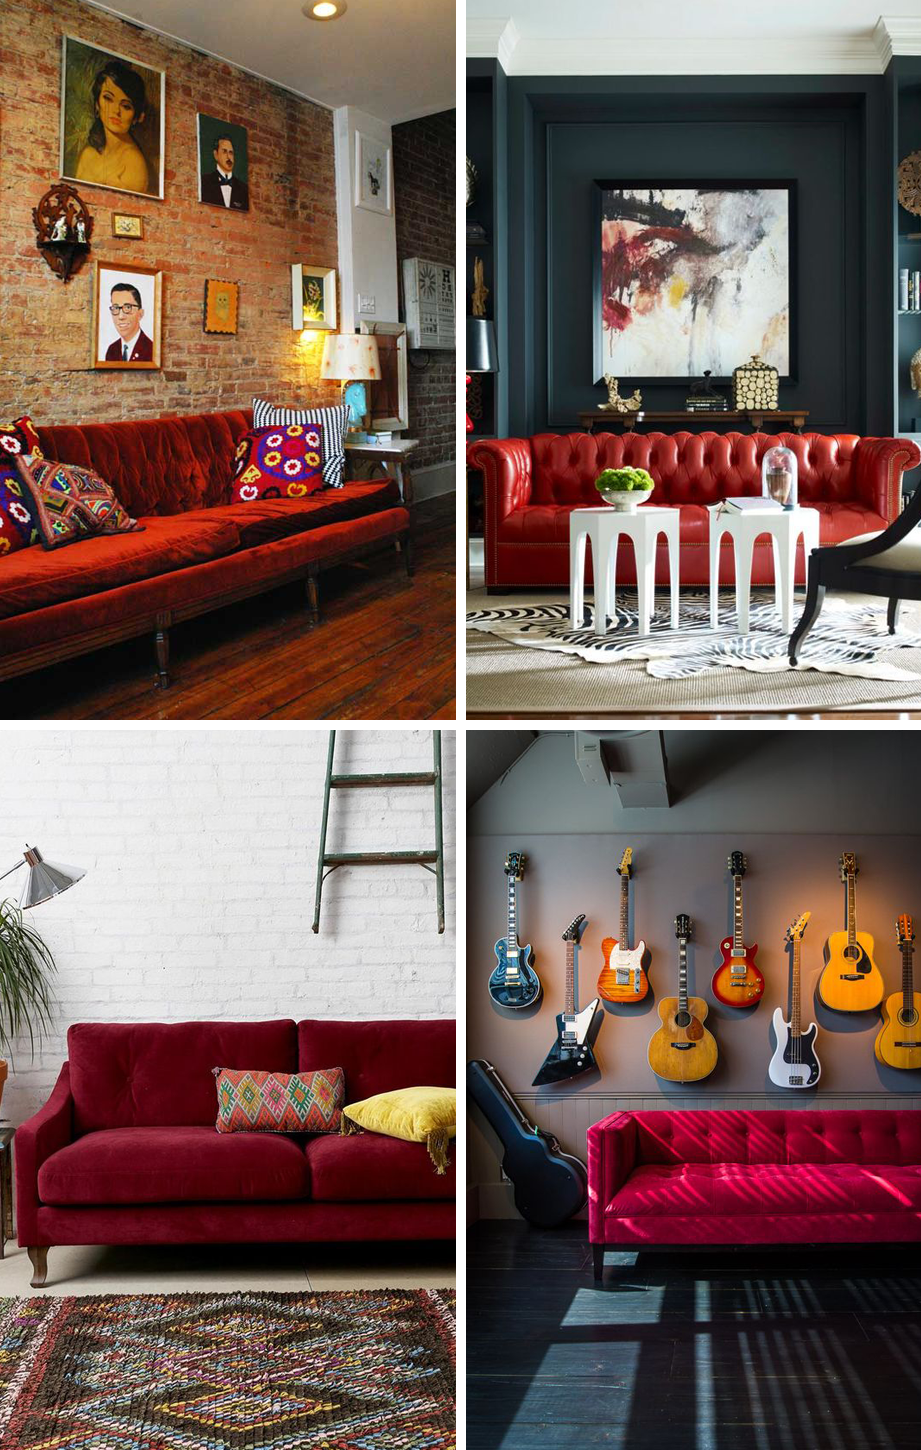 24 Colorful Couches That Make a Statement   Home Inspiration